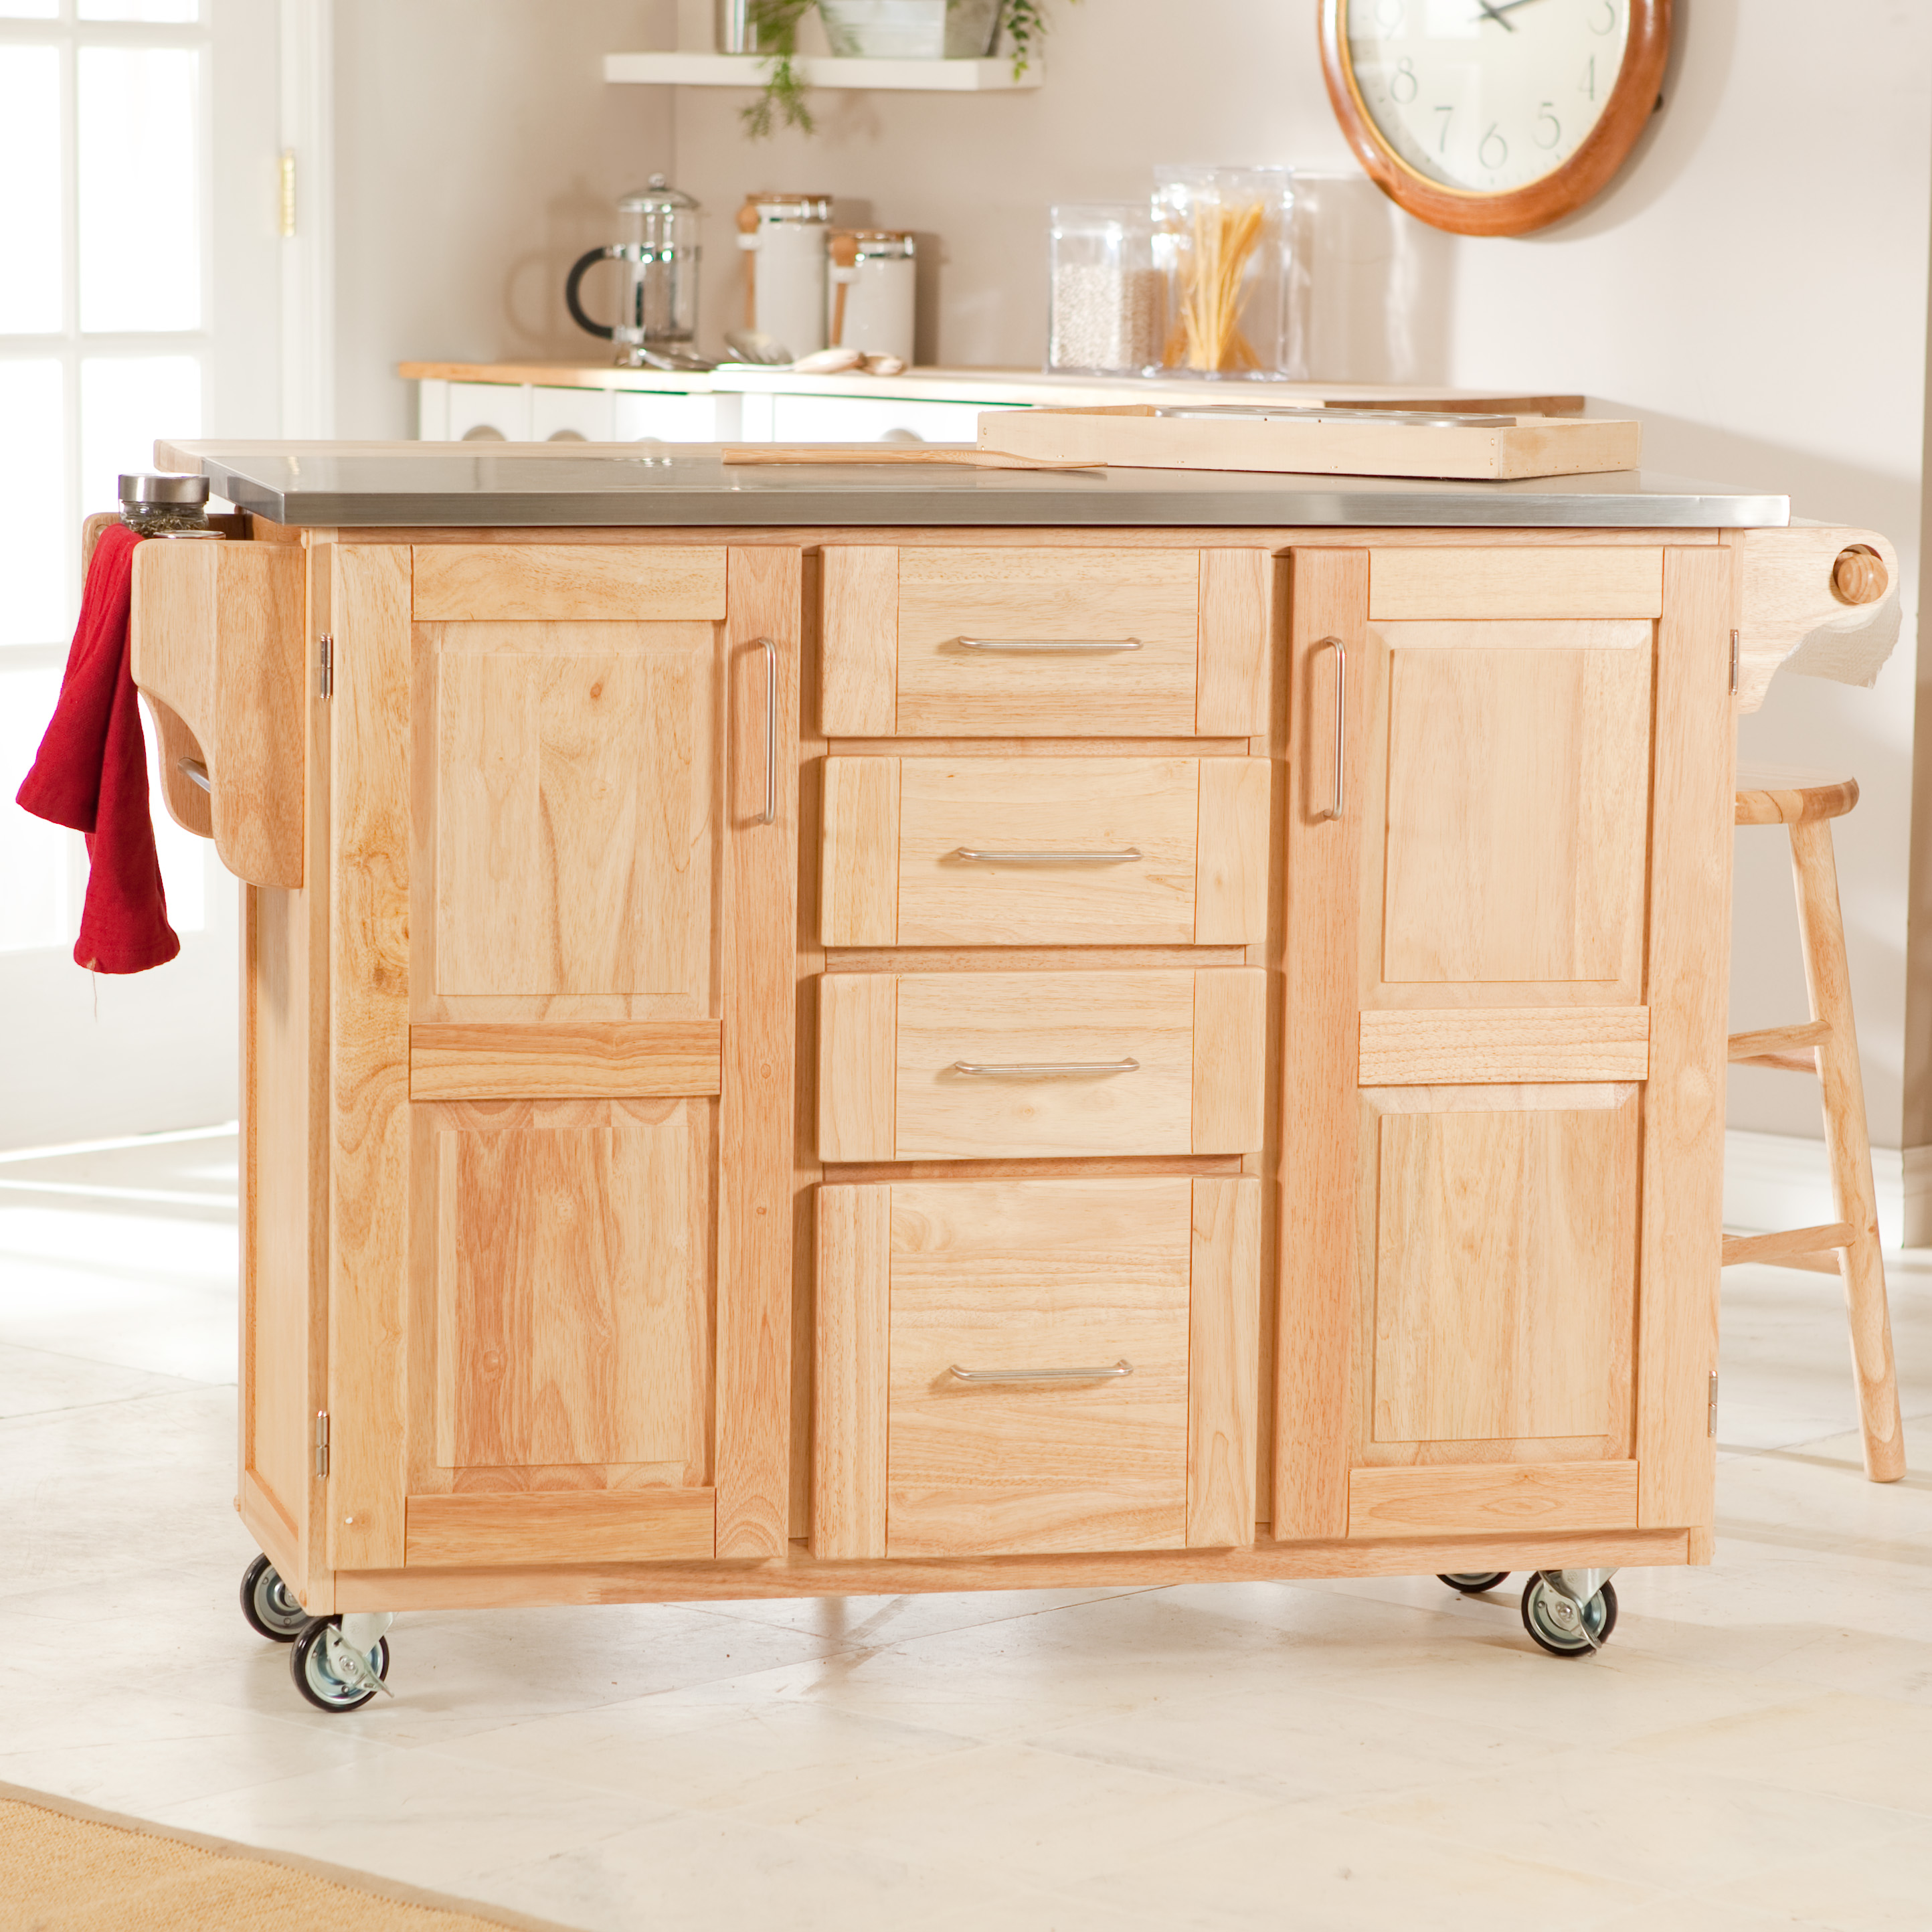 Origami Folding Kitchen Island Cart with Casters - Bronze ... | 2887x2887